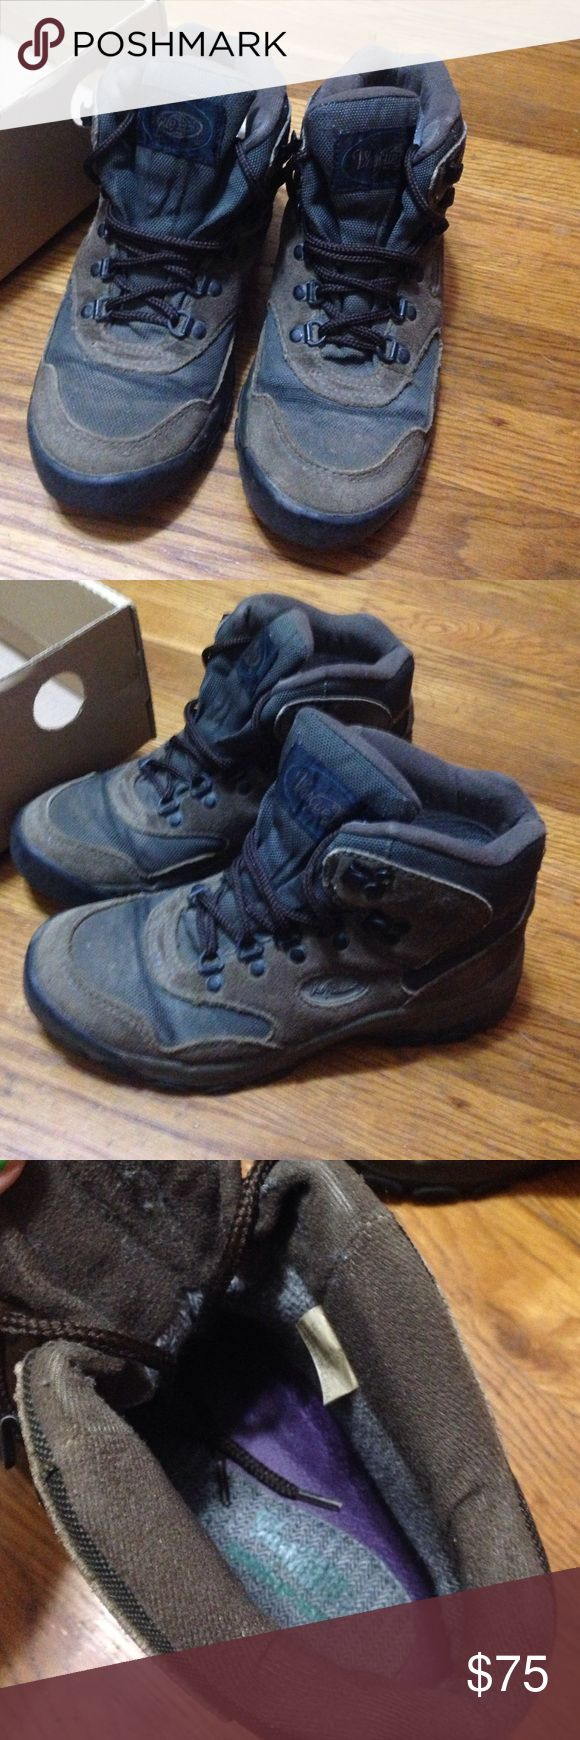 Vasque hiking boots Great condition. Winter hiking boots Vasque Shoes Ankle Boots & Booties